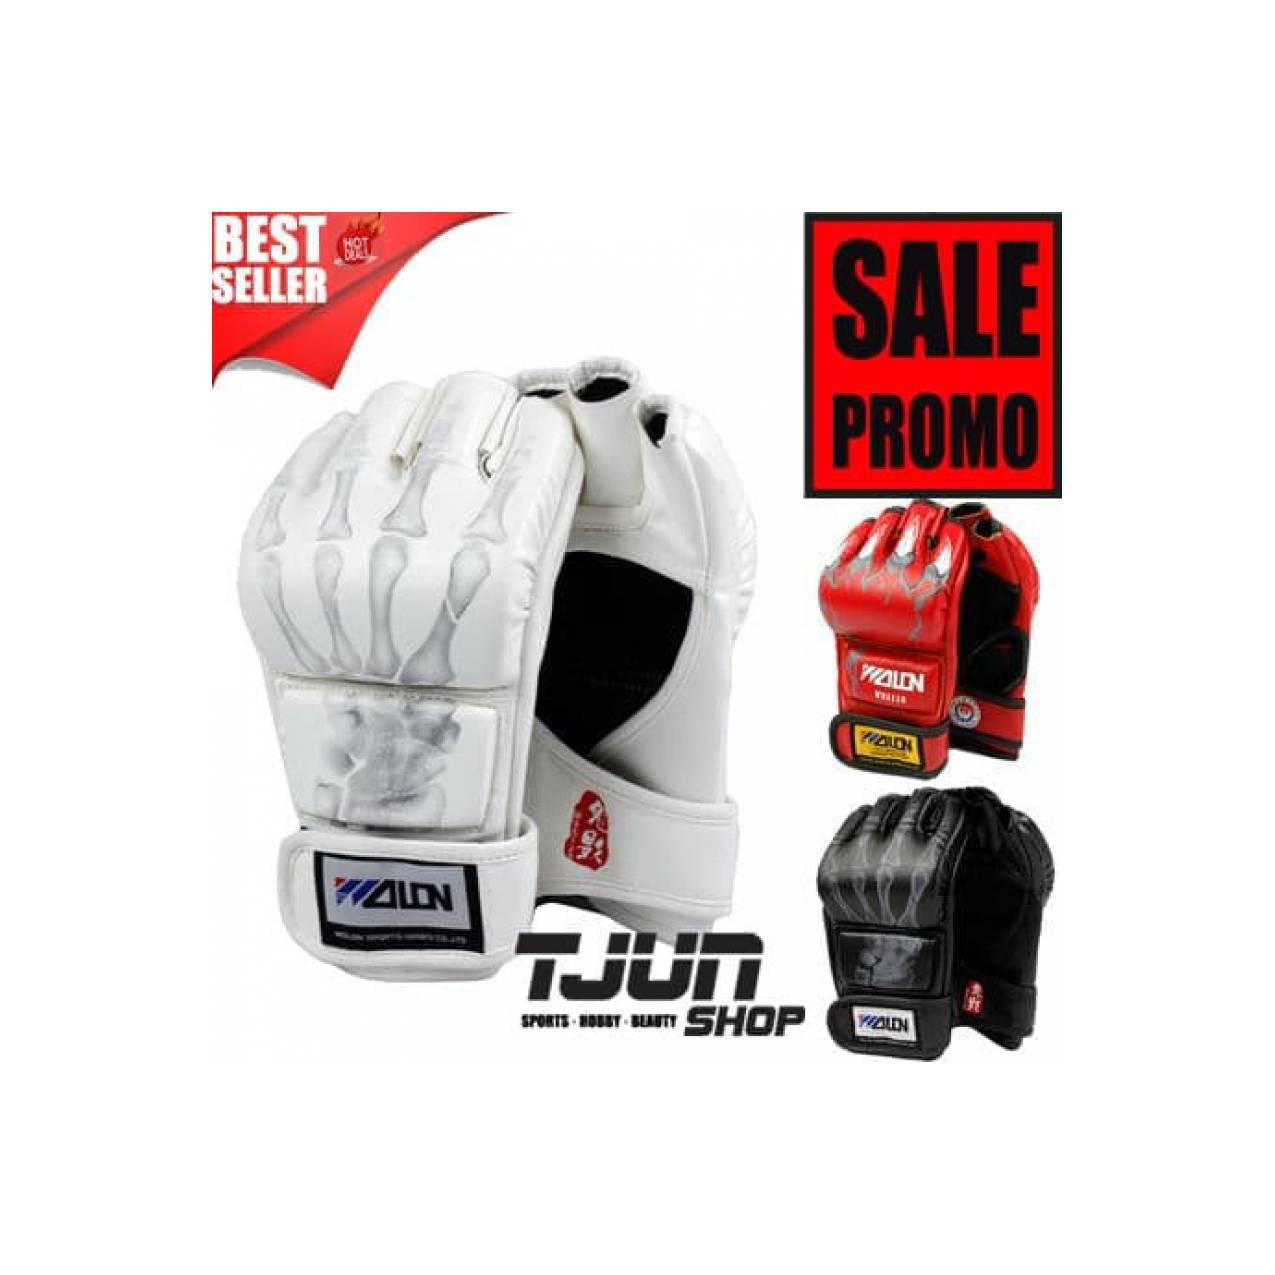 Jual WOLON Gloves MMA Muay Thai Kick Boxing Body Combat Sarung Tinju